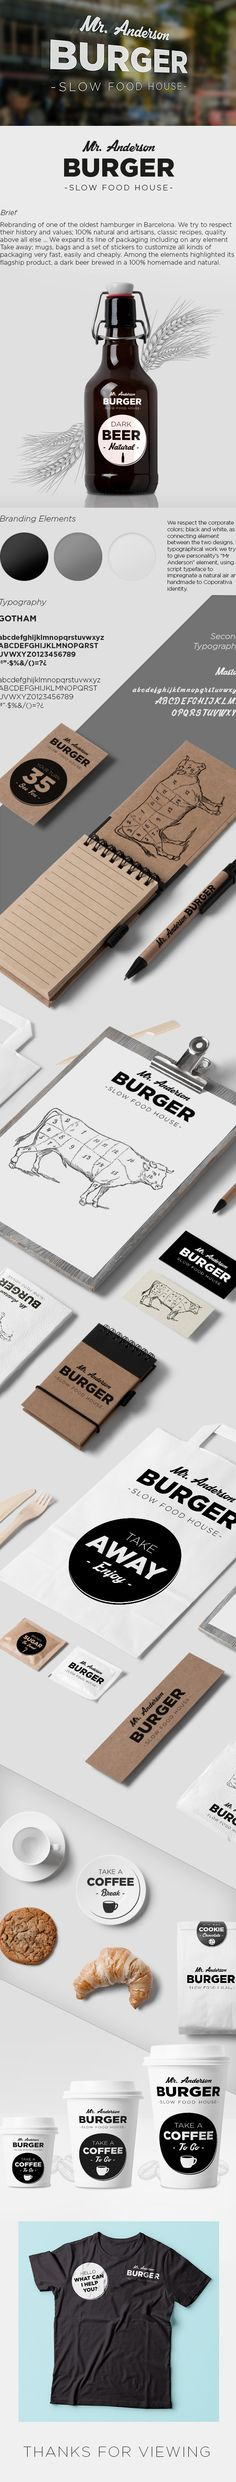 Mr. Anderson Burger on Behance by Erik from Oz. What could be better than a burger and a beer packaging PD